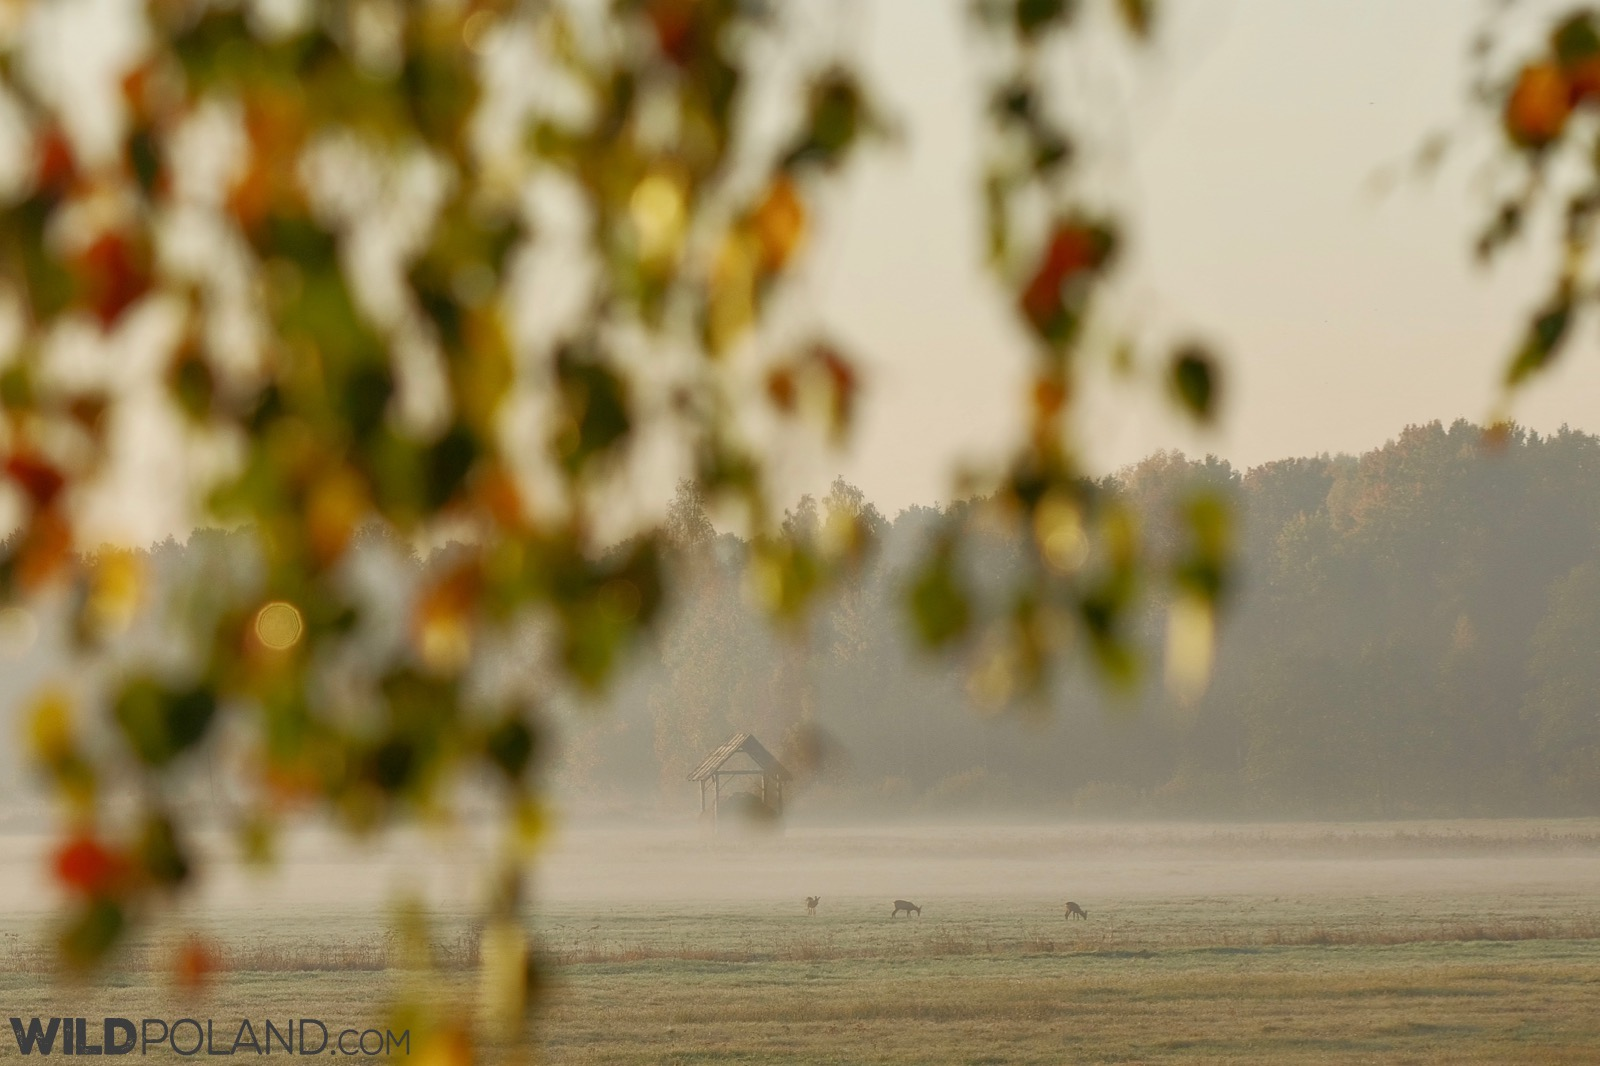 Misty autumn morning and roe deer at one of the Białowieża Forest meadows, photo by Andrzej Petryna